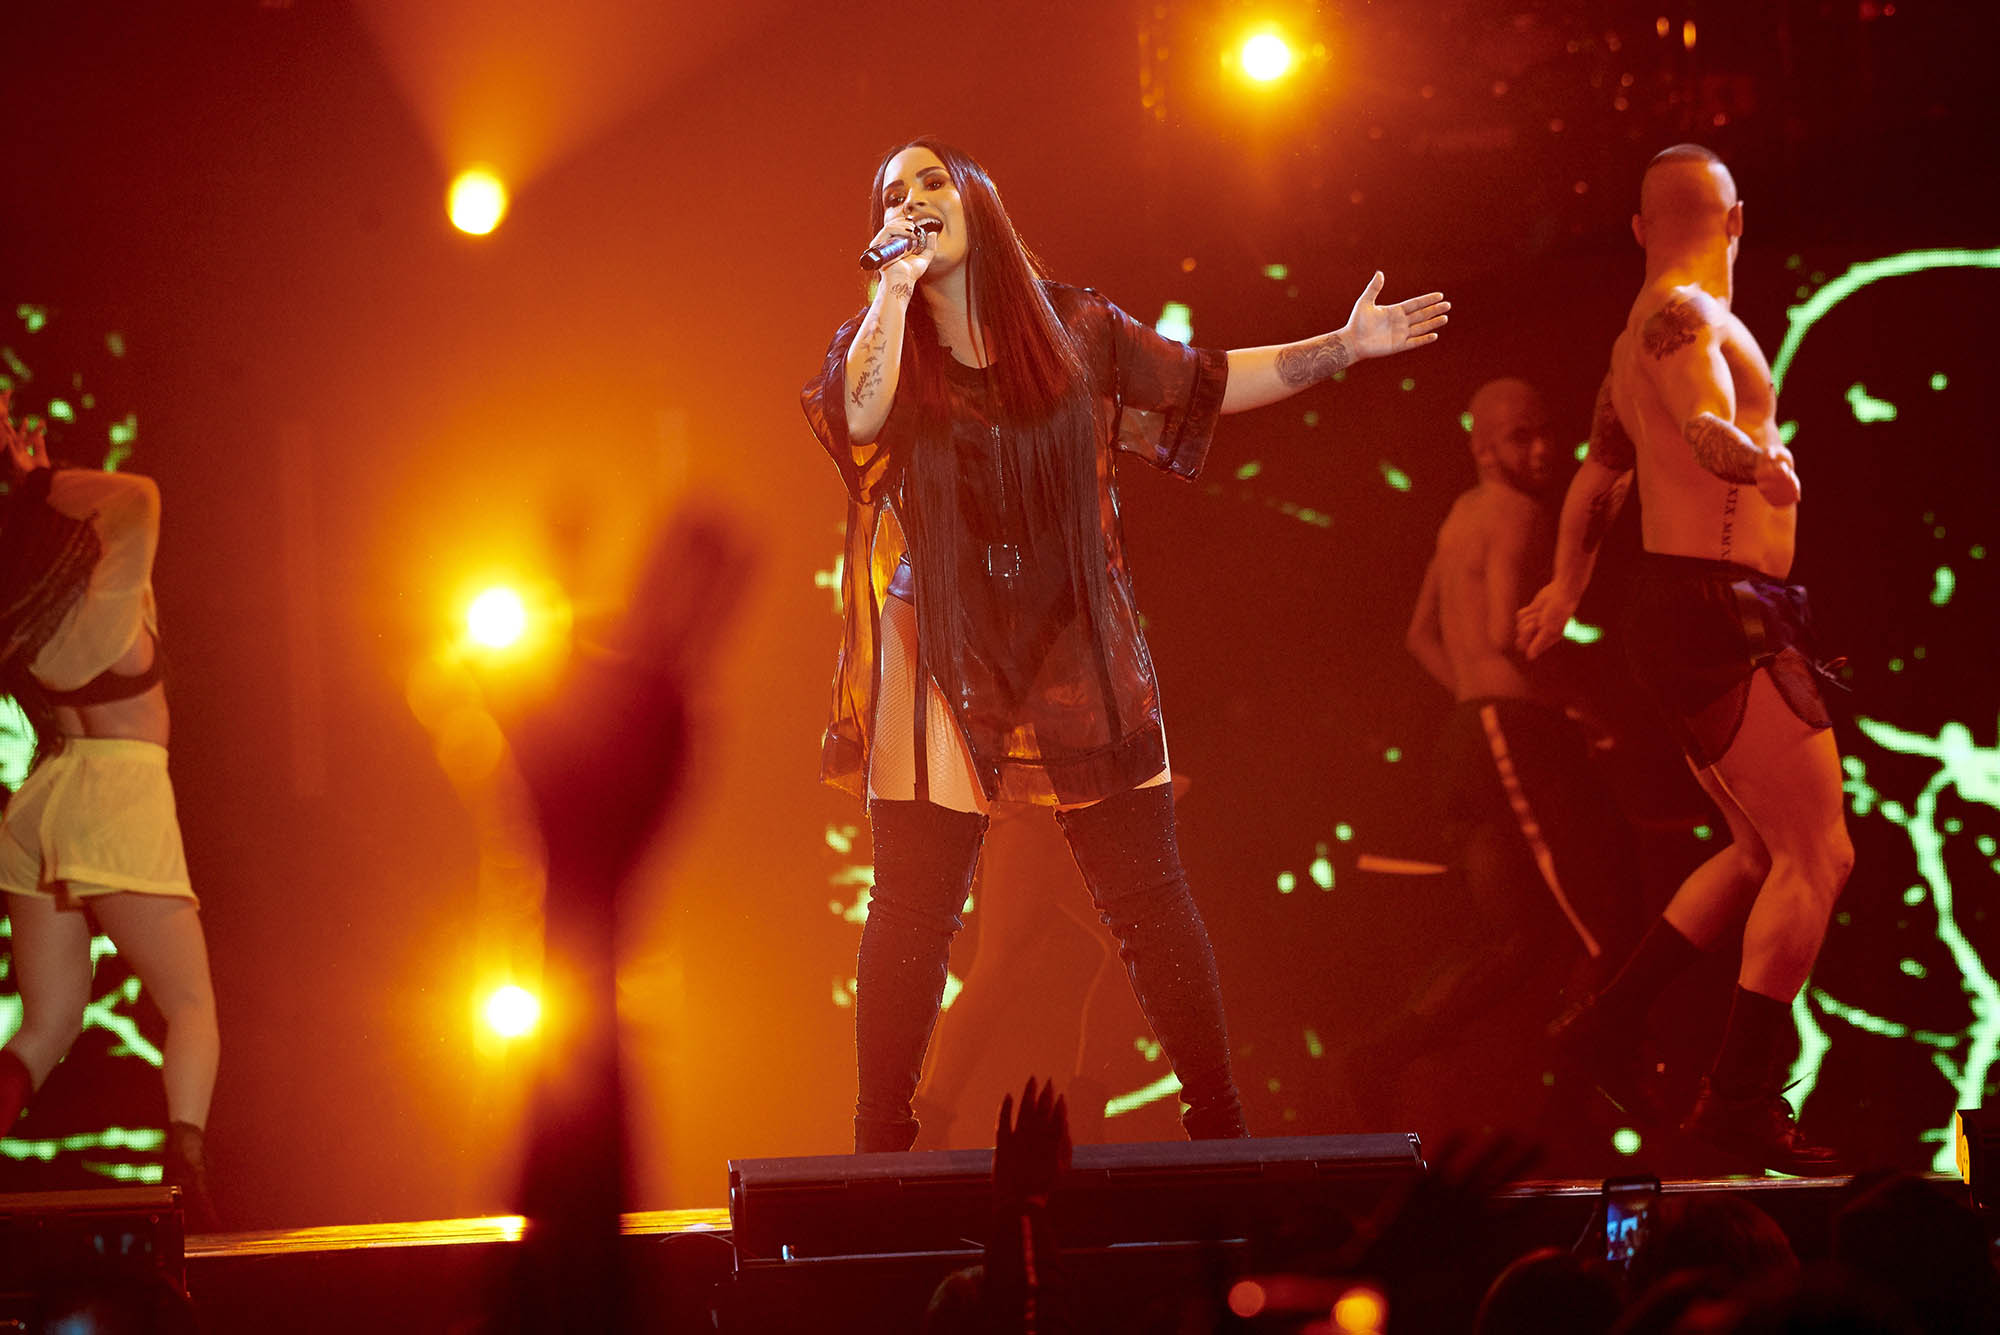 MINNEAPOLIS, MN MARCH 10: Demi Lovato performs at Target Center on March 10, 2017 in Minneapolis, Minnesota. © Tony Nelson